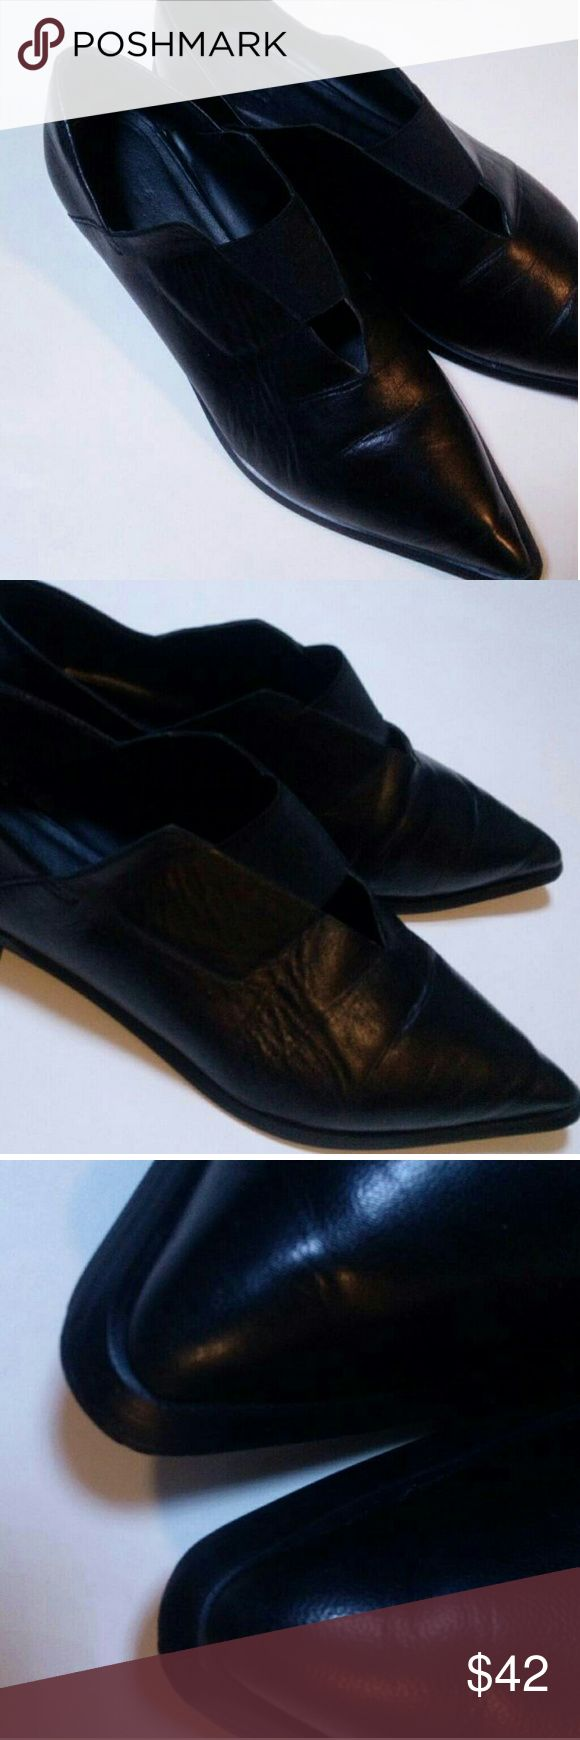 Zara V neck Leather Flats size 8(38) Collection A/W 2016/2017. In great condition!!! I did not use these shoes for long. Comfortable, soft, stylish! you will love them !!! Zara Shoes Flats & Loafers